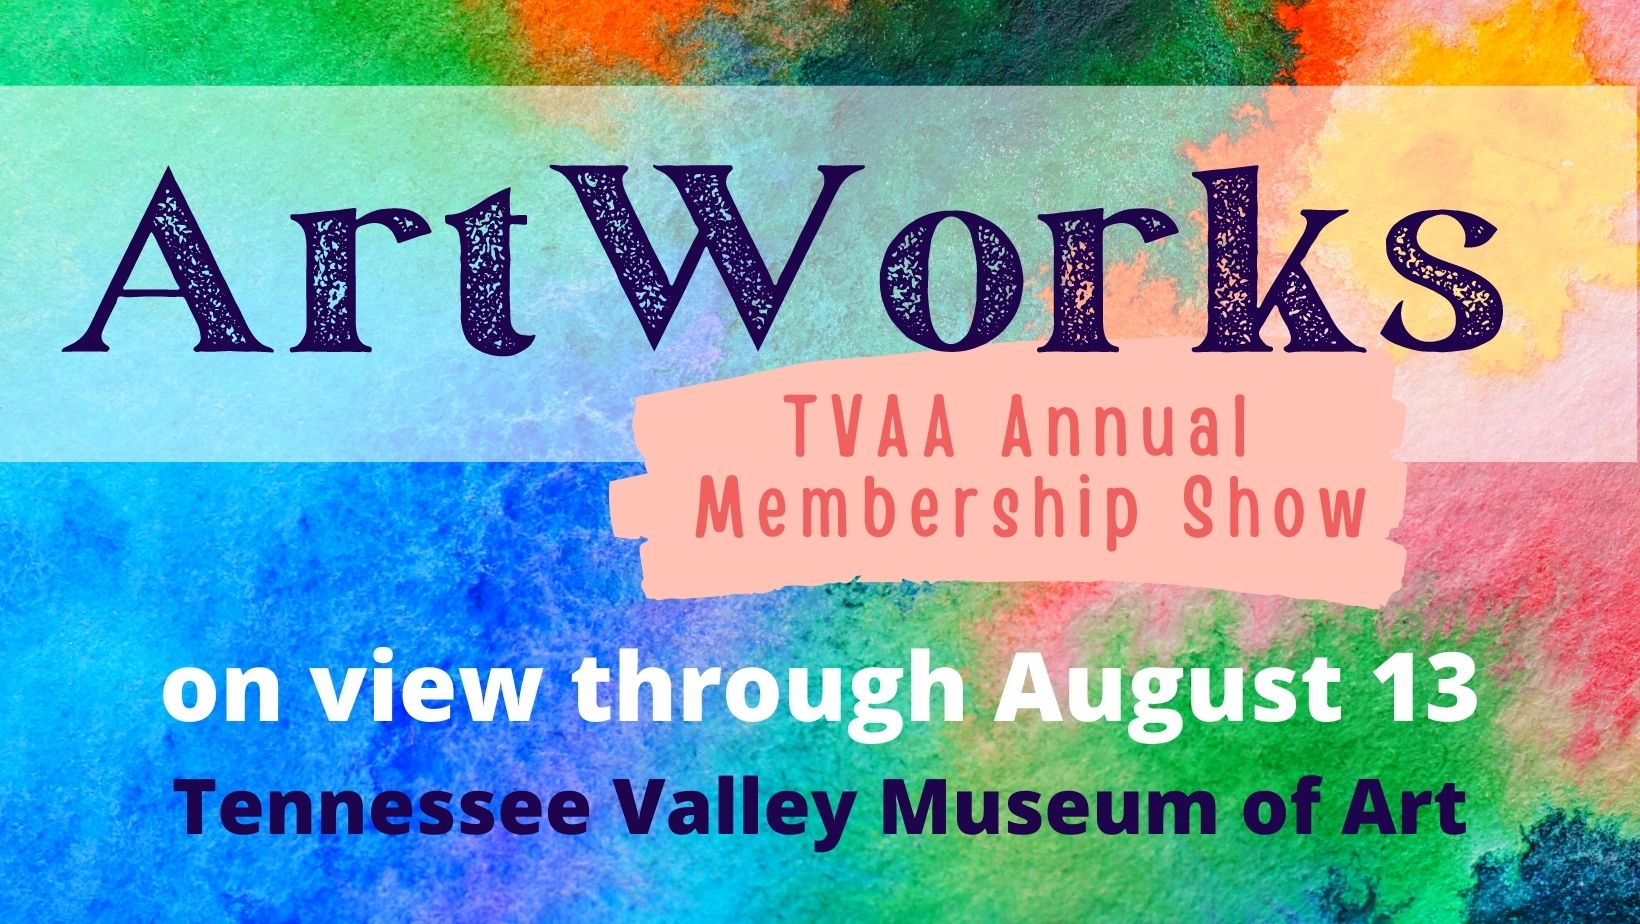 ArtWorks: TVAA Annual Membership Show. On view through August 13. Tennessee Valley Museum of Art.